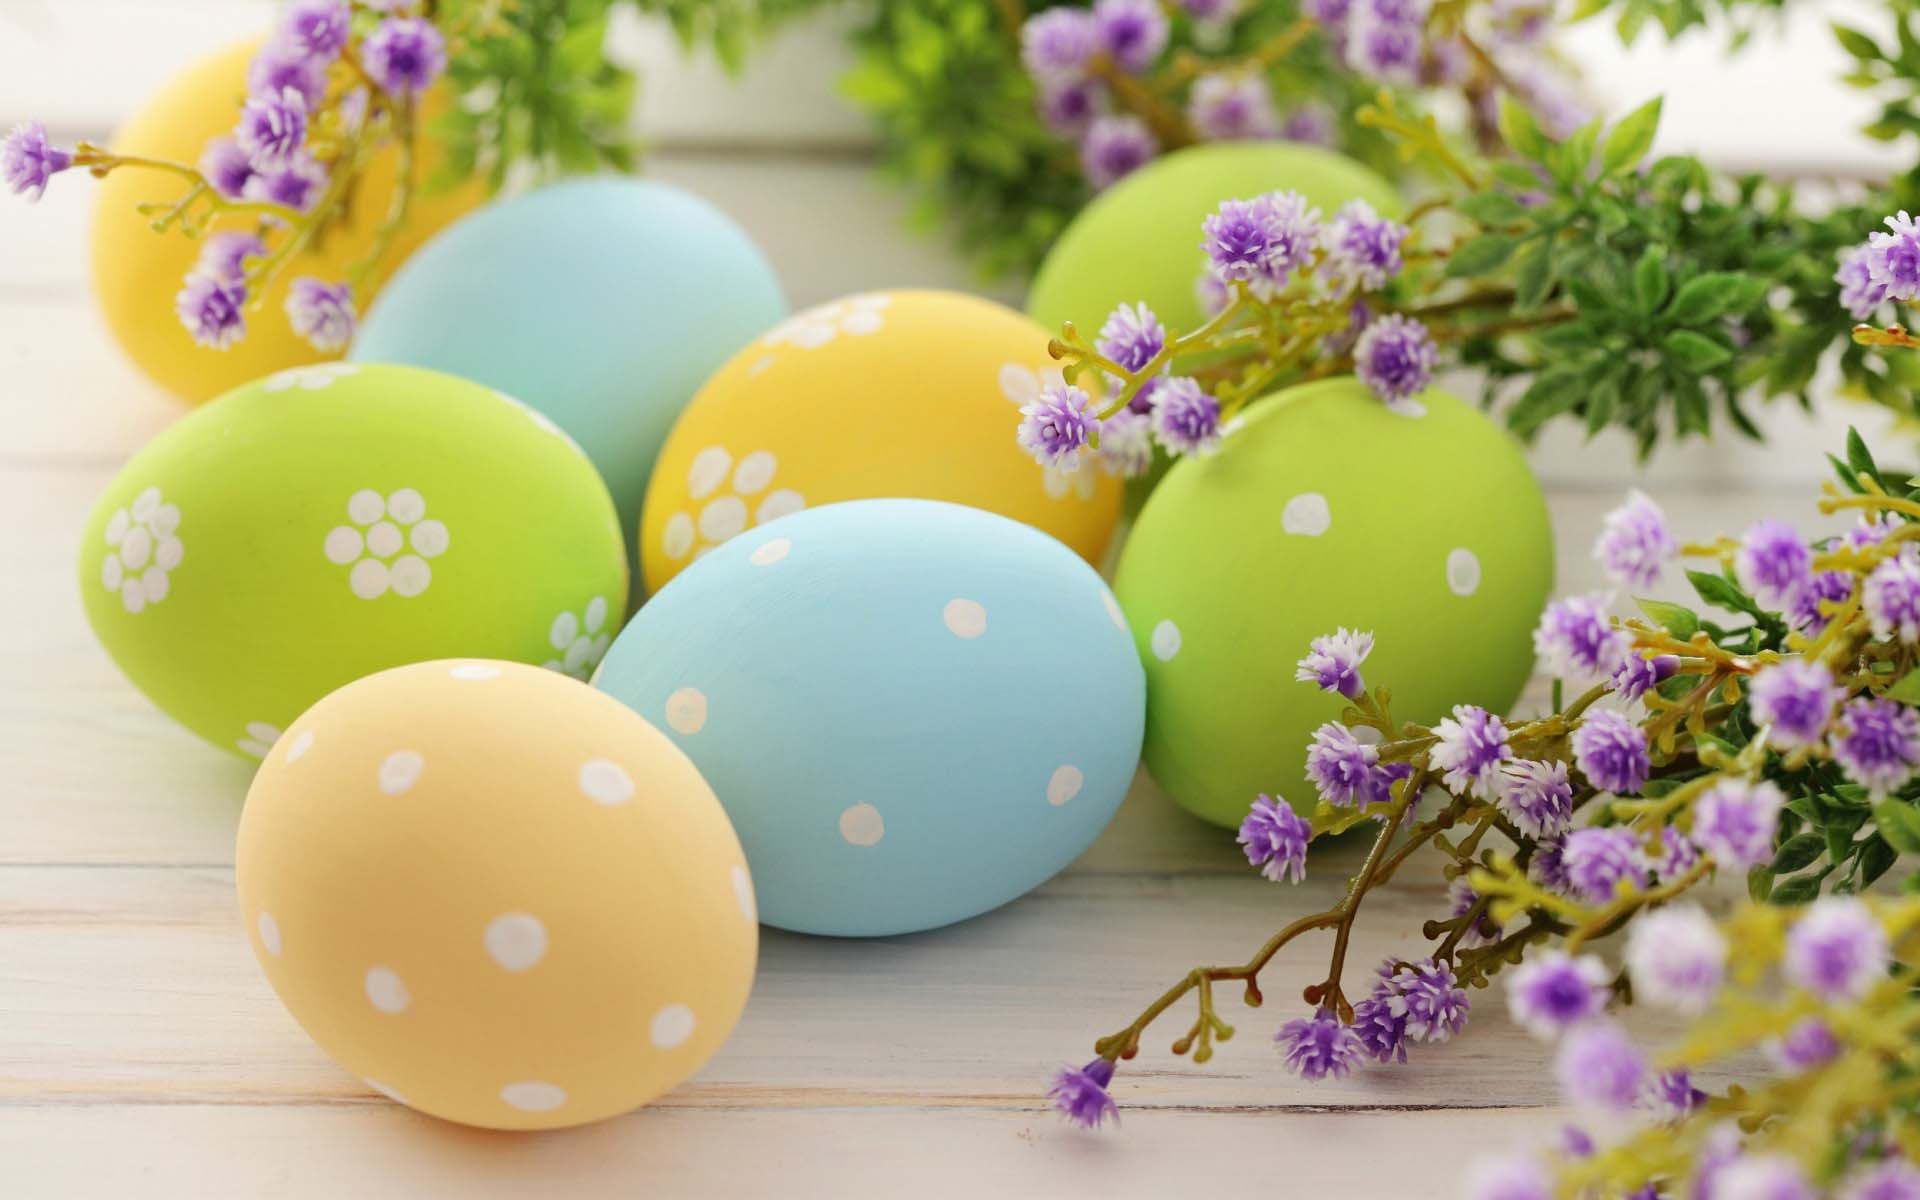 Holidays Happy Easter 2014 HD Wallpapers 1900×1200